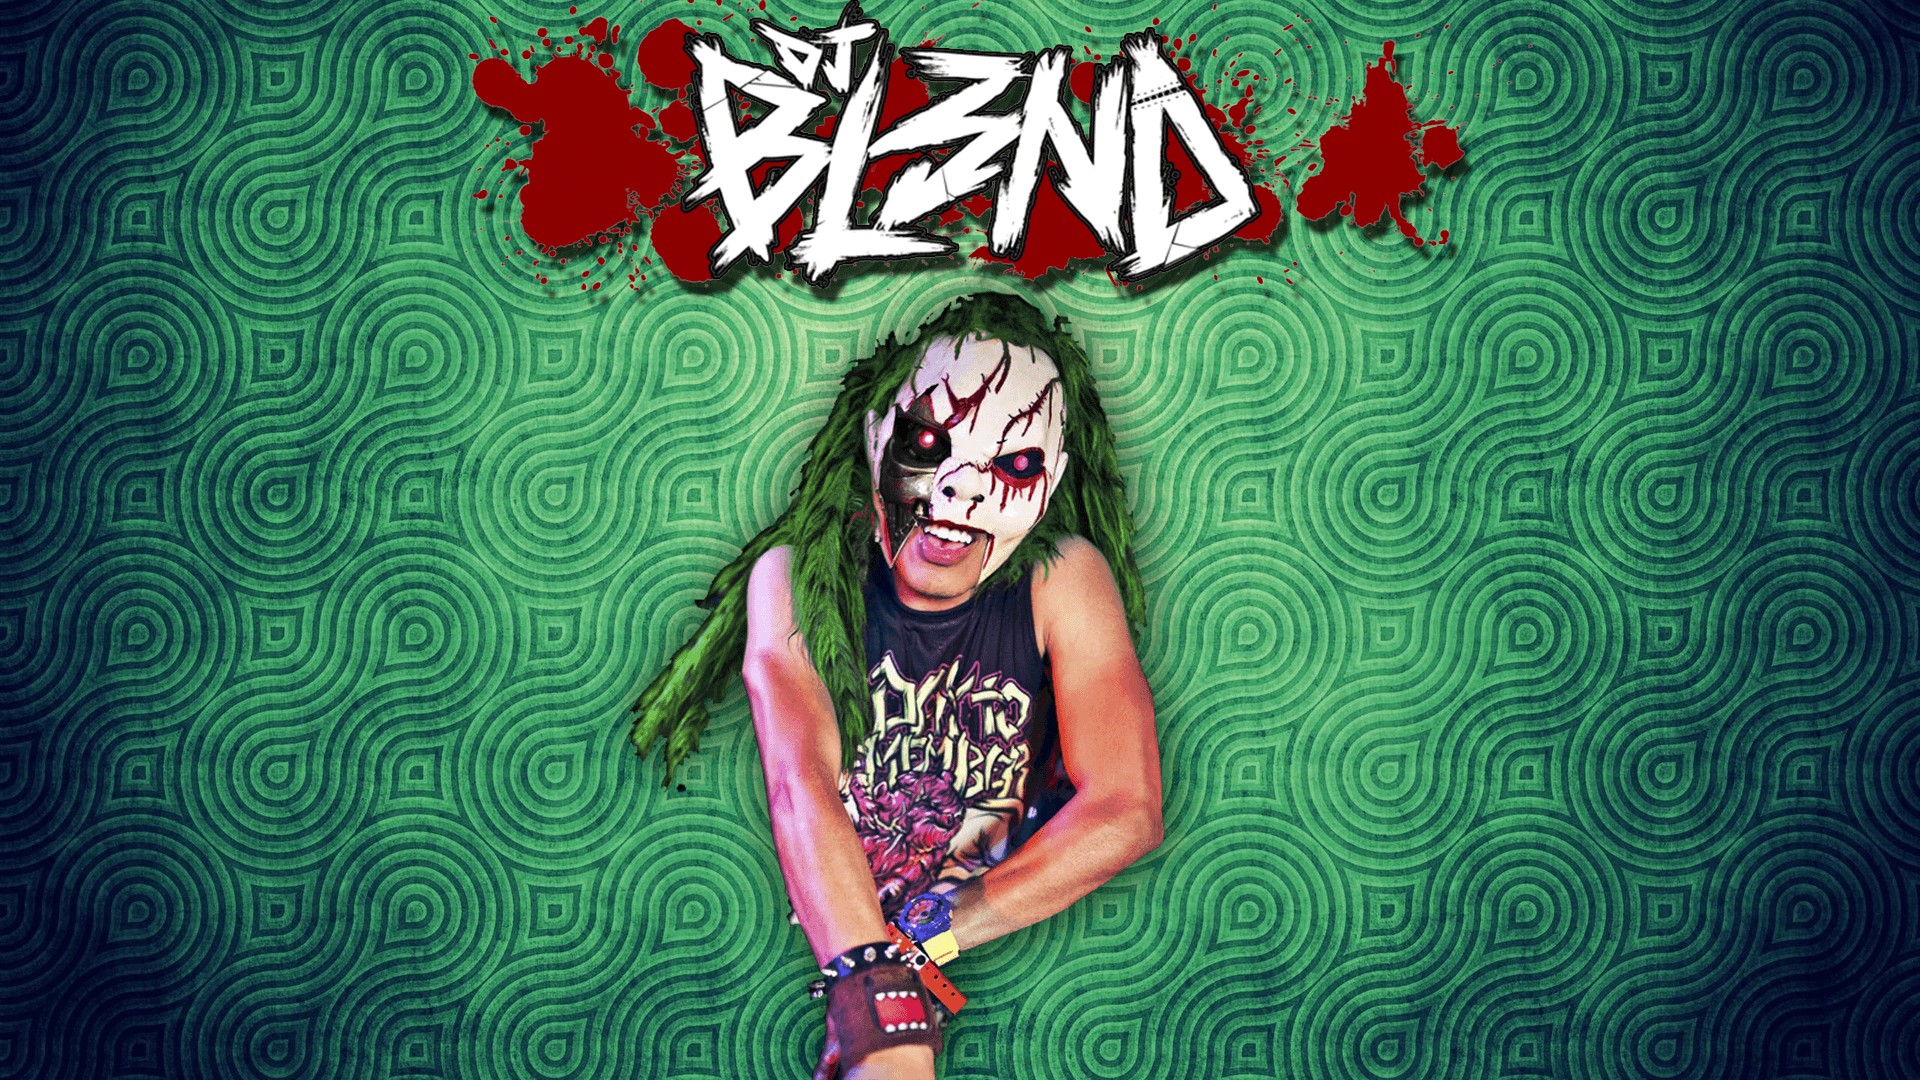 dj blend mp3 download 2015